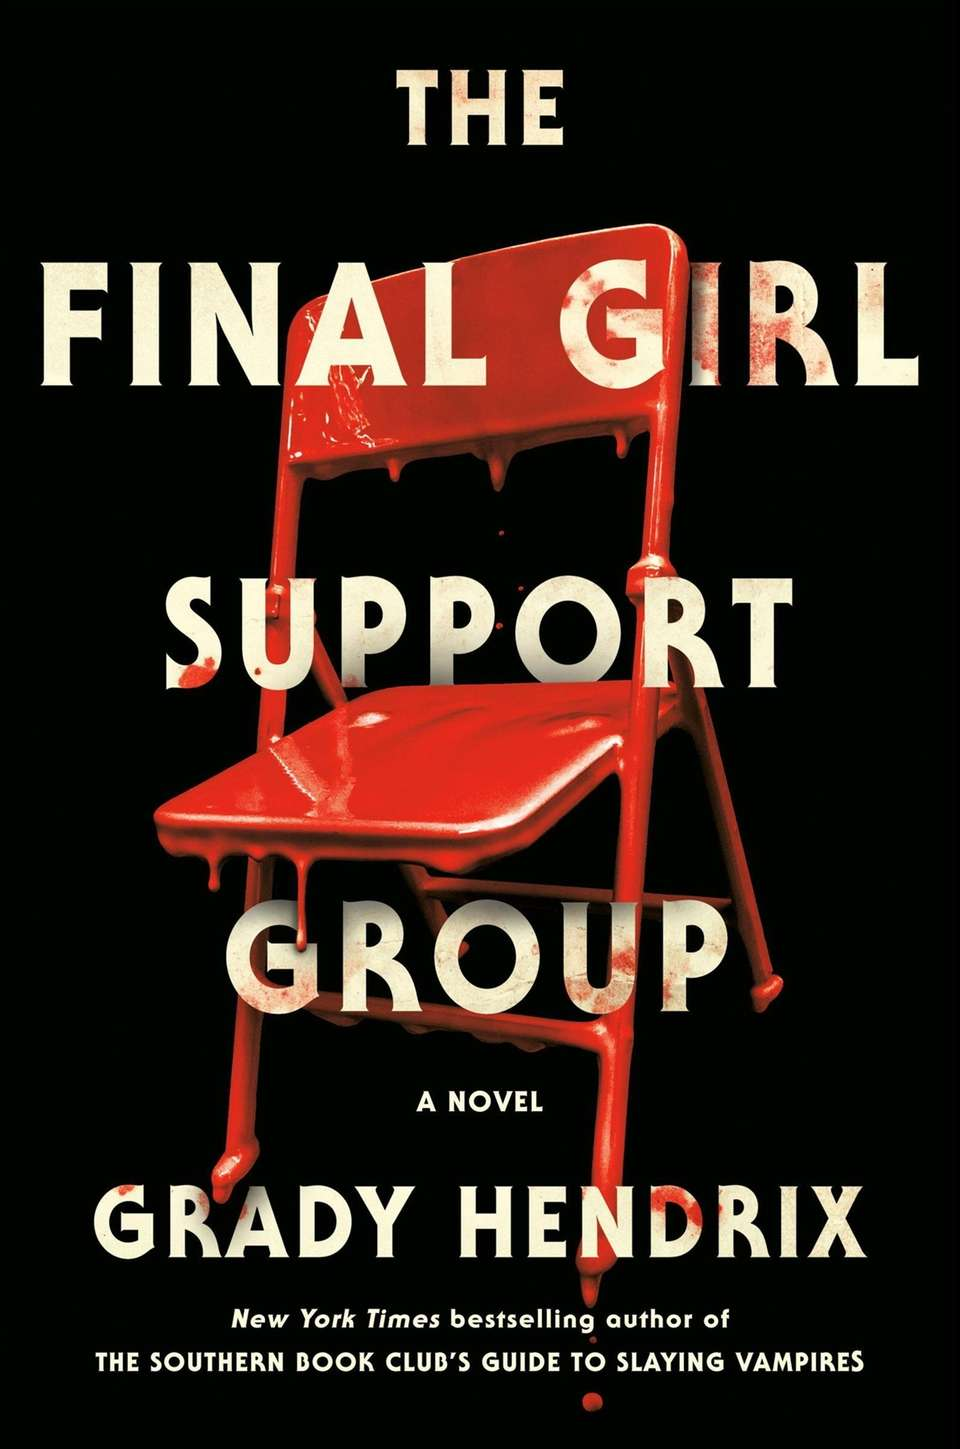 THE FINAL GIRL SUPPORT GROUP, by Grady HendrixIf